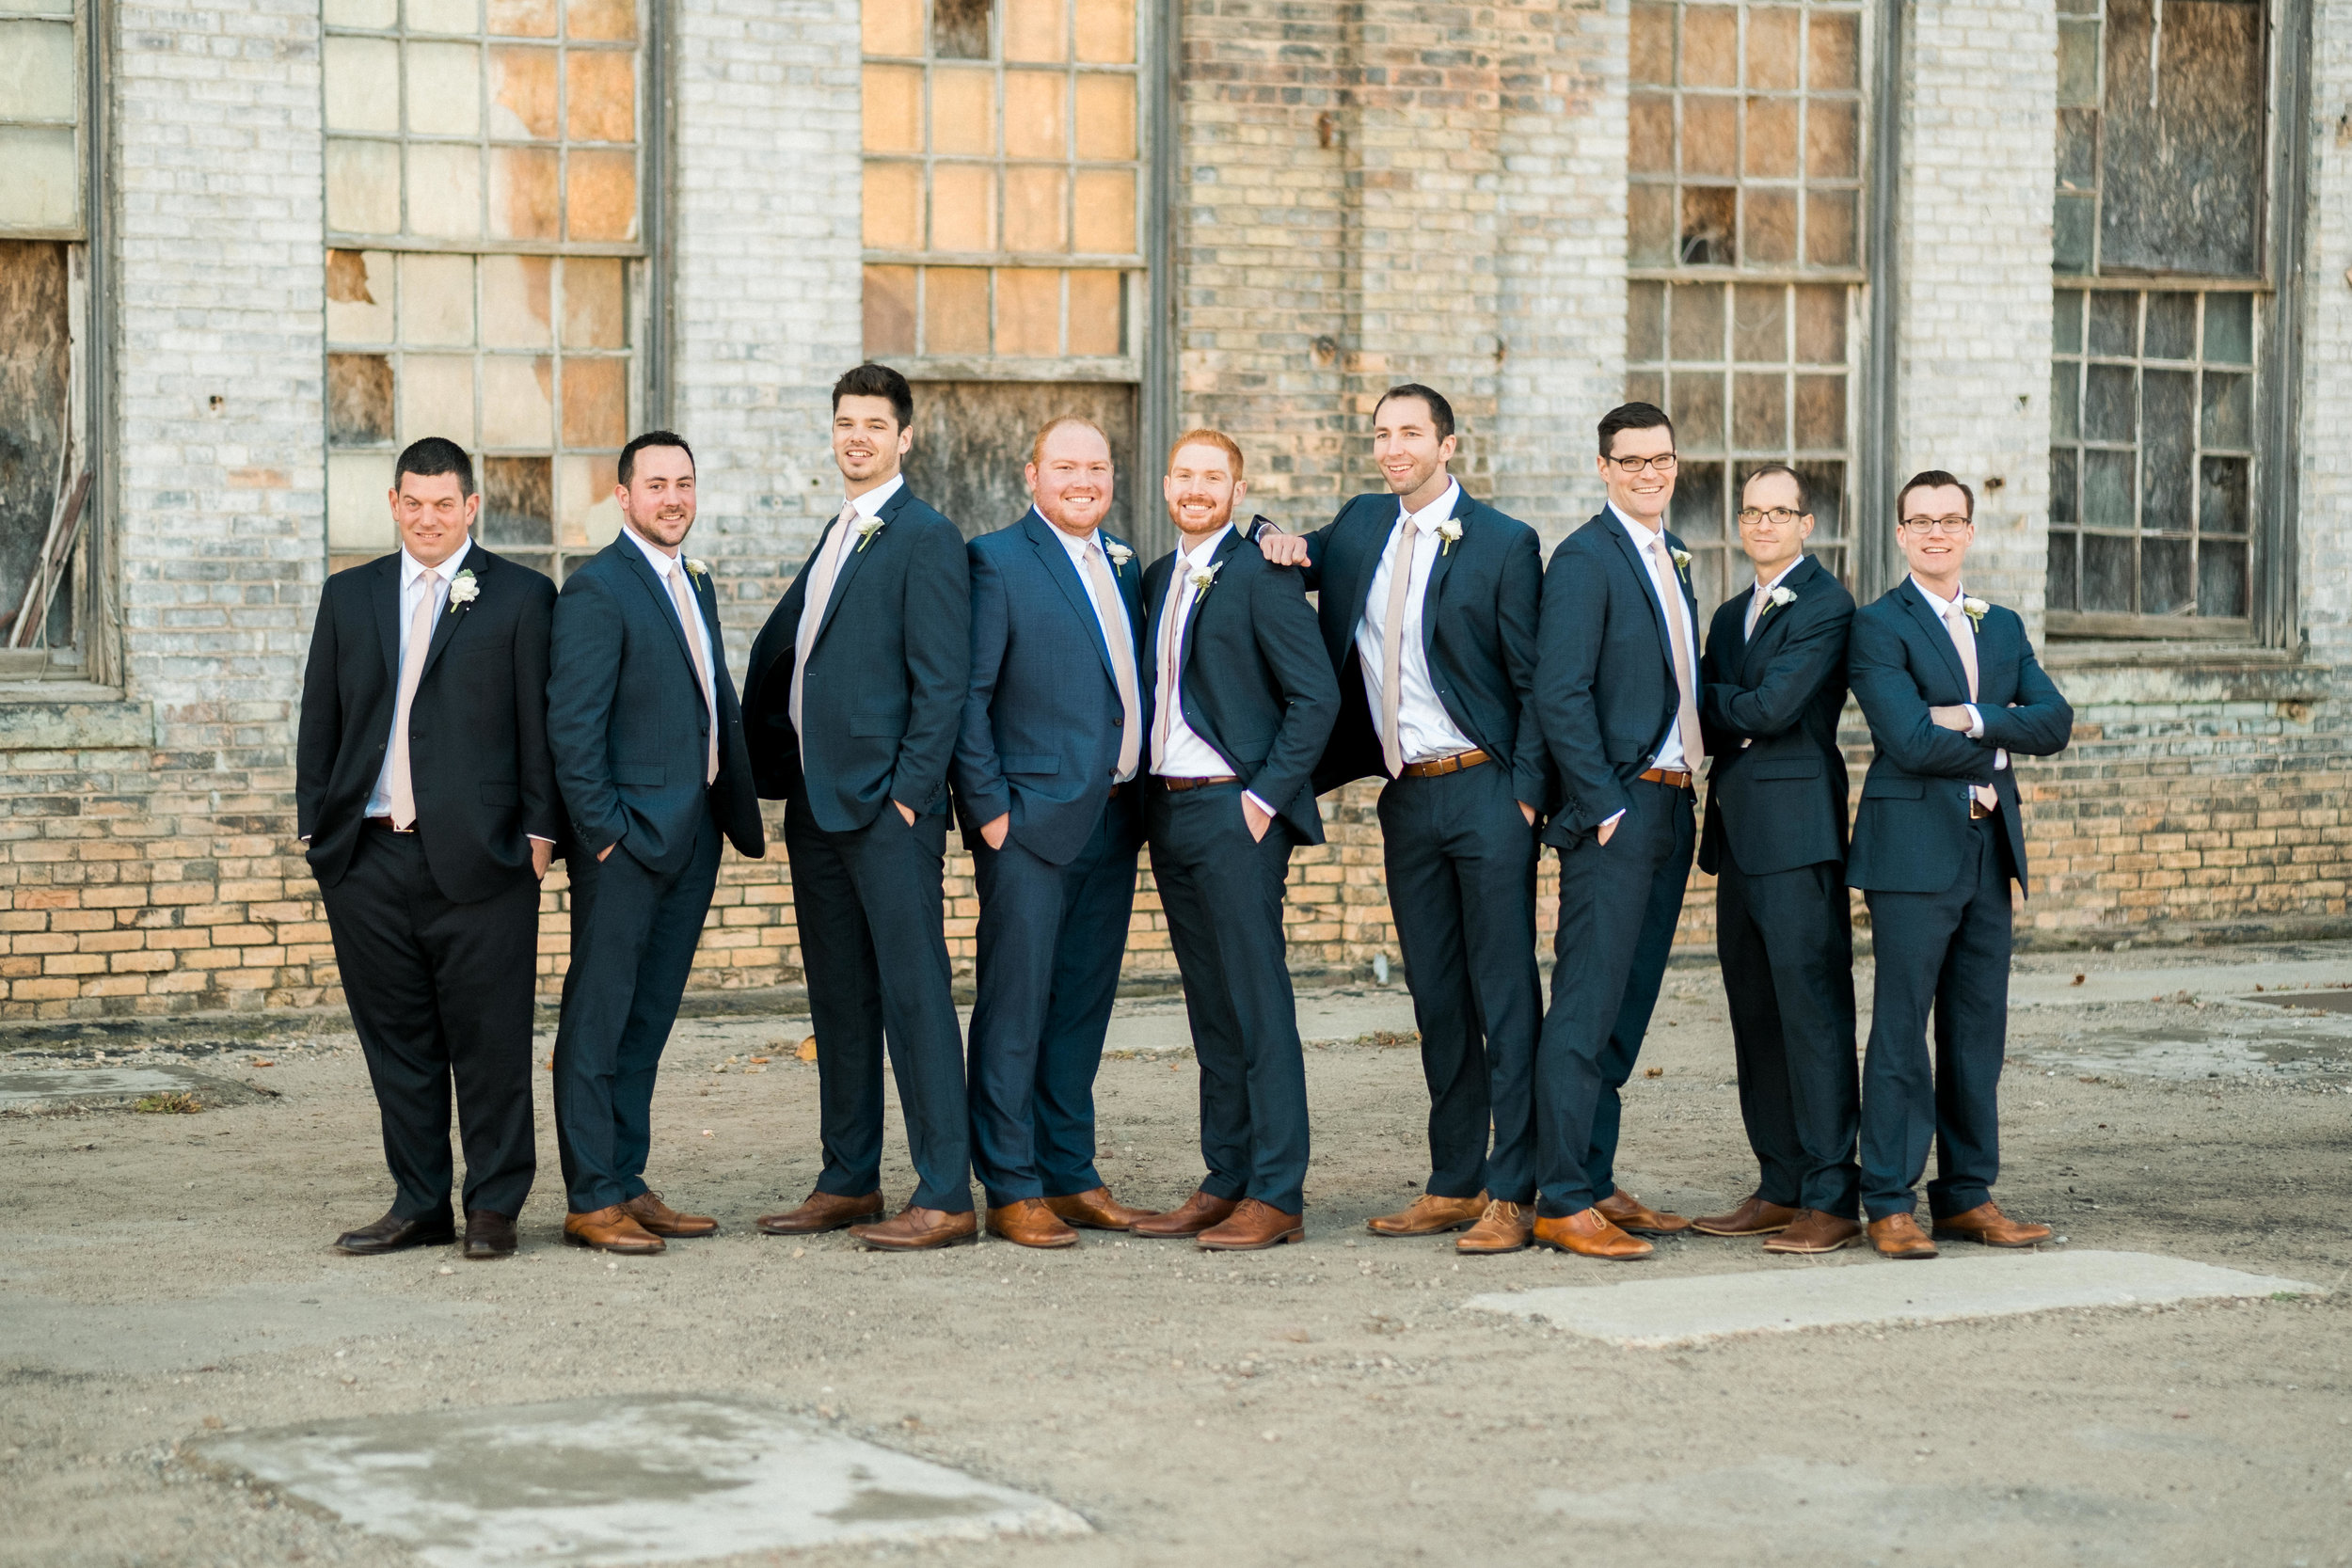 groomsmen grouping at the np space in brainerd